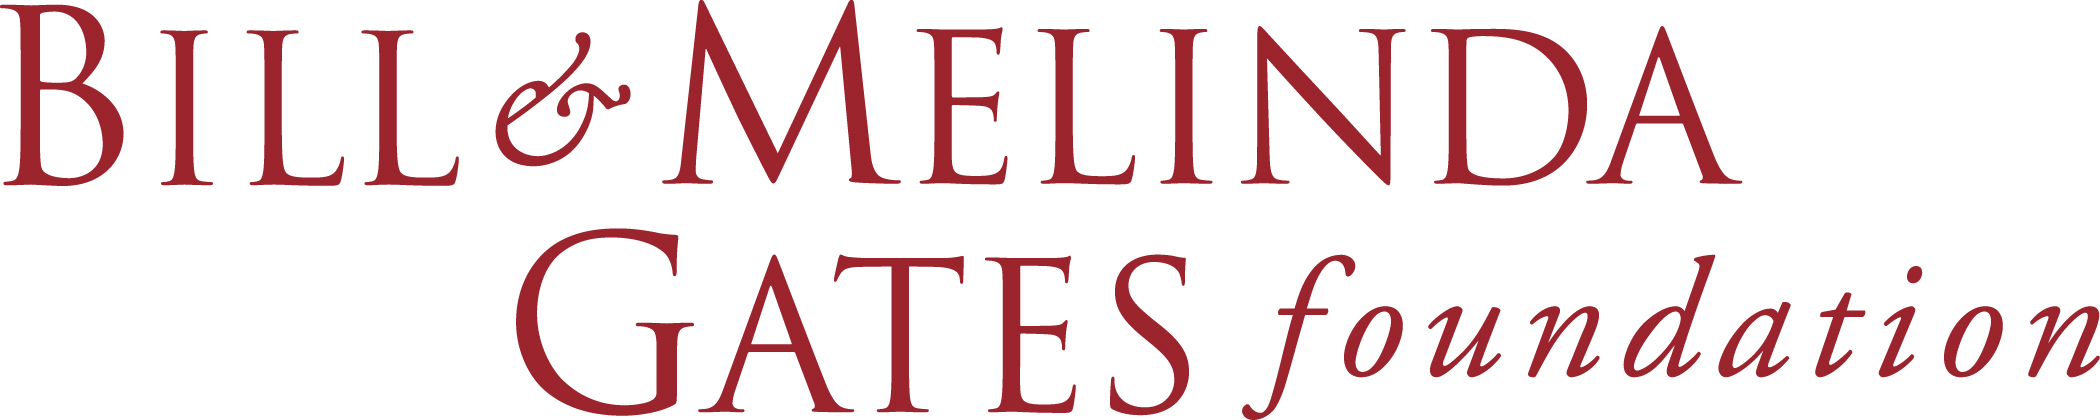 Bill and Melinda Gates Foundation written in red font